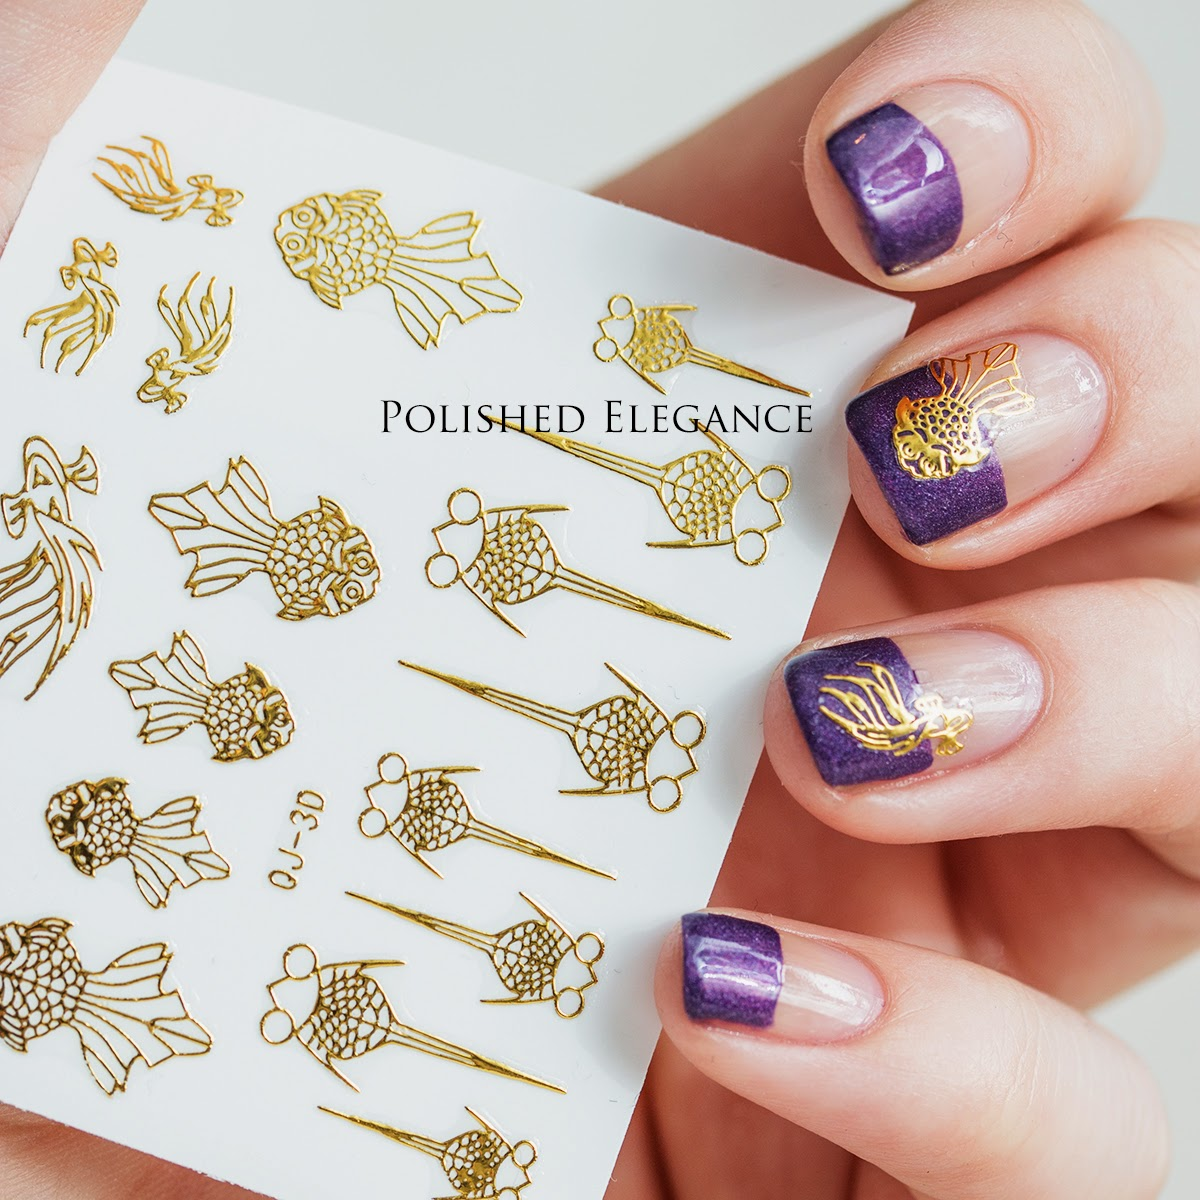 Purple negative space manicure for Facial Palsy Week - Cadillaquer - Cap'n Cook